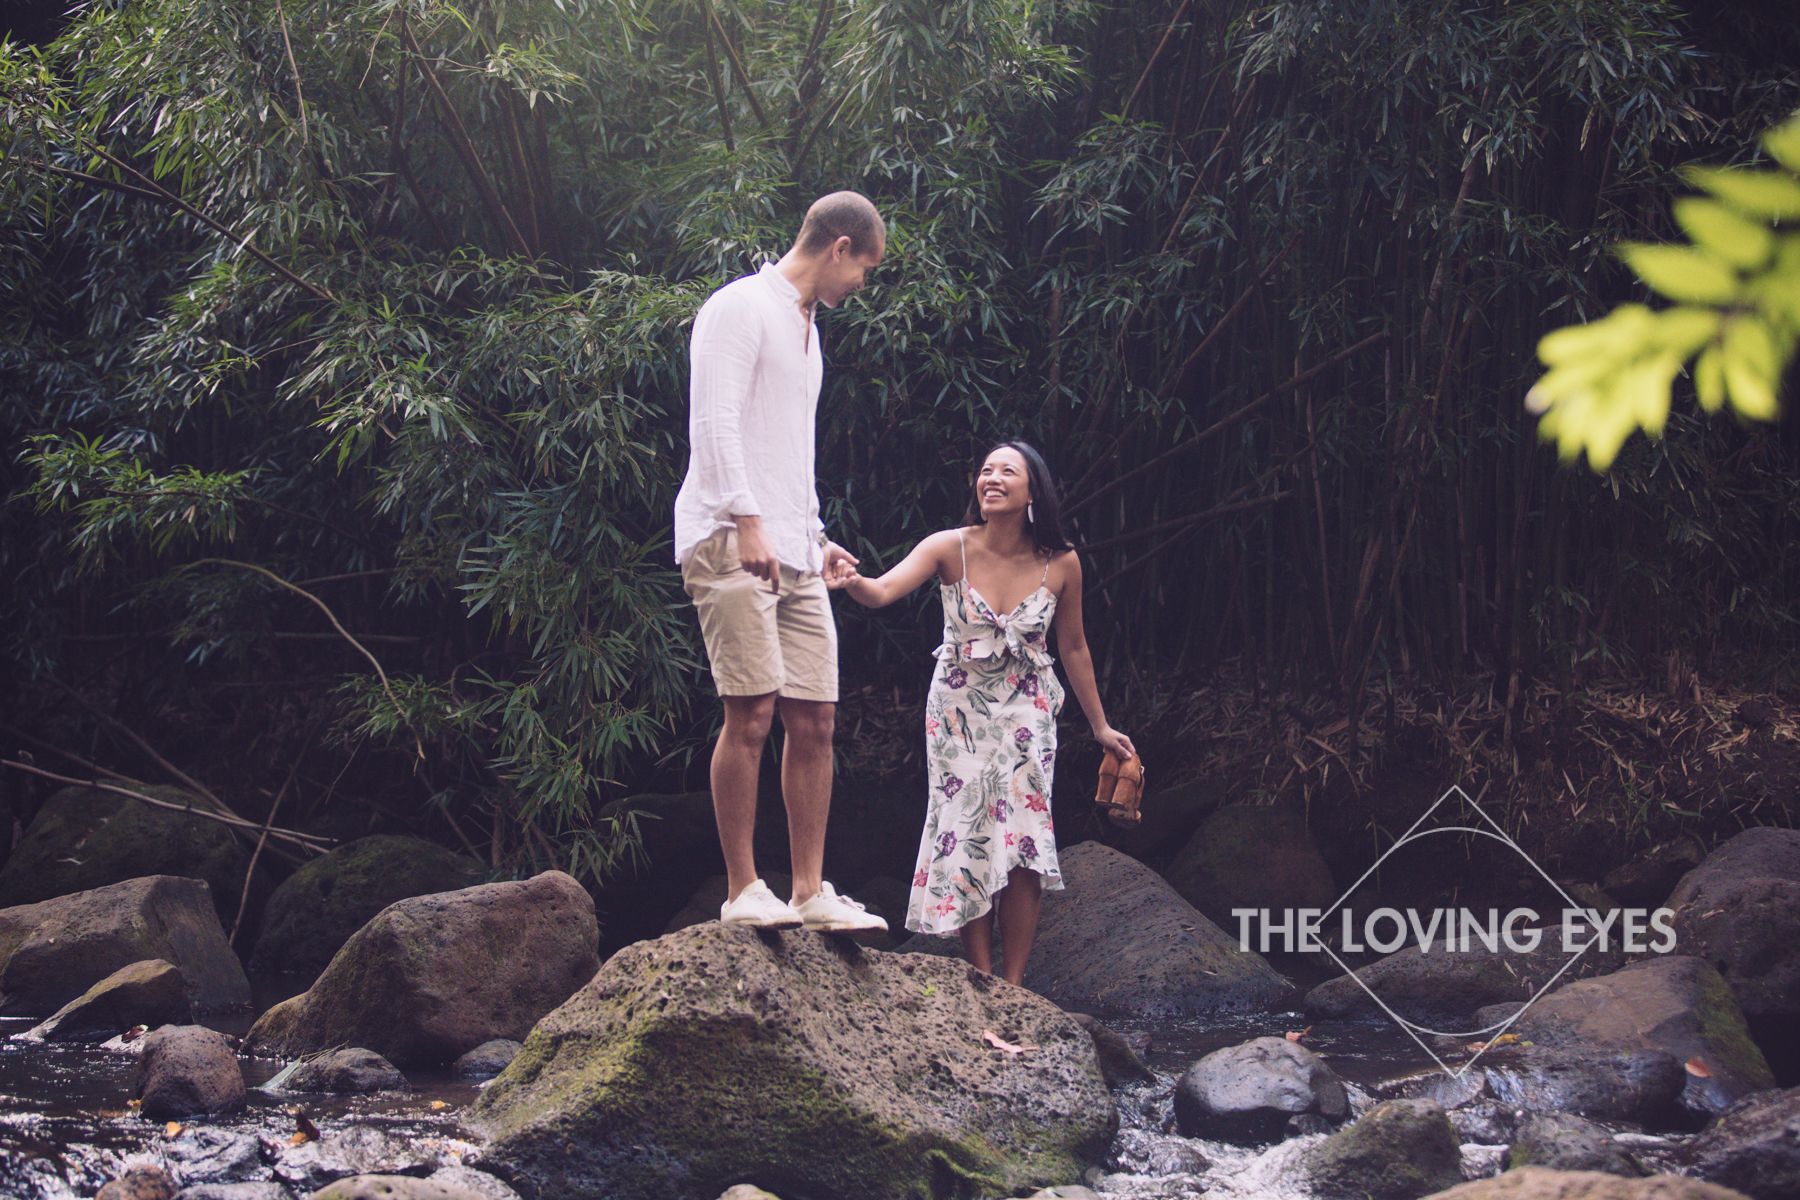 Engagement photos in a bamboo forest stream in Hawaii